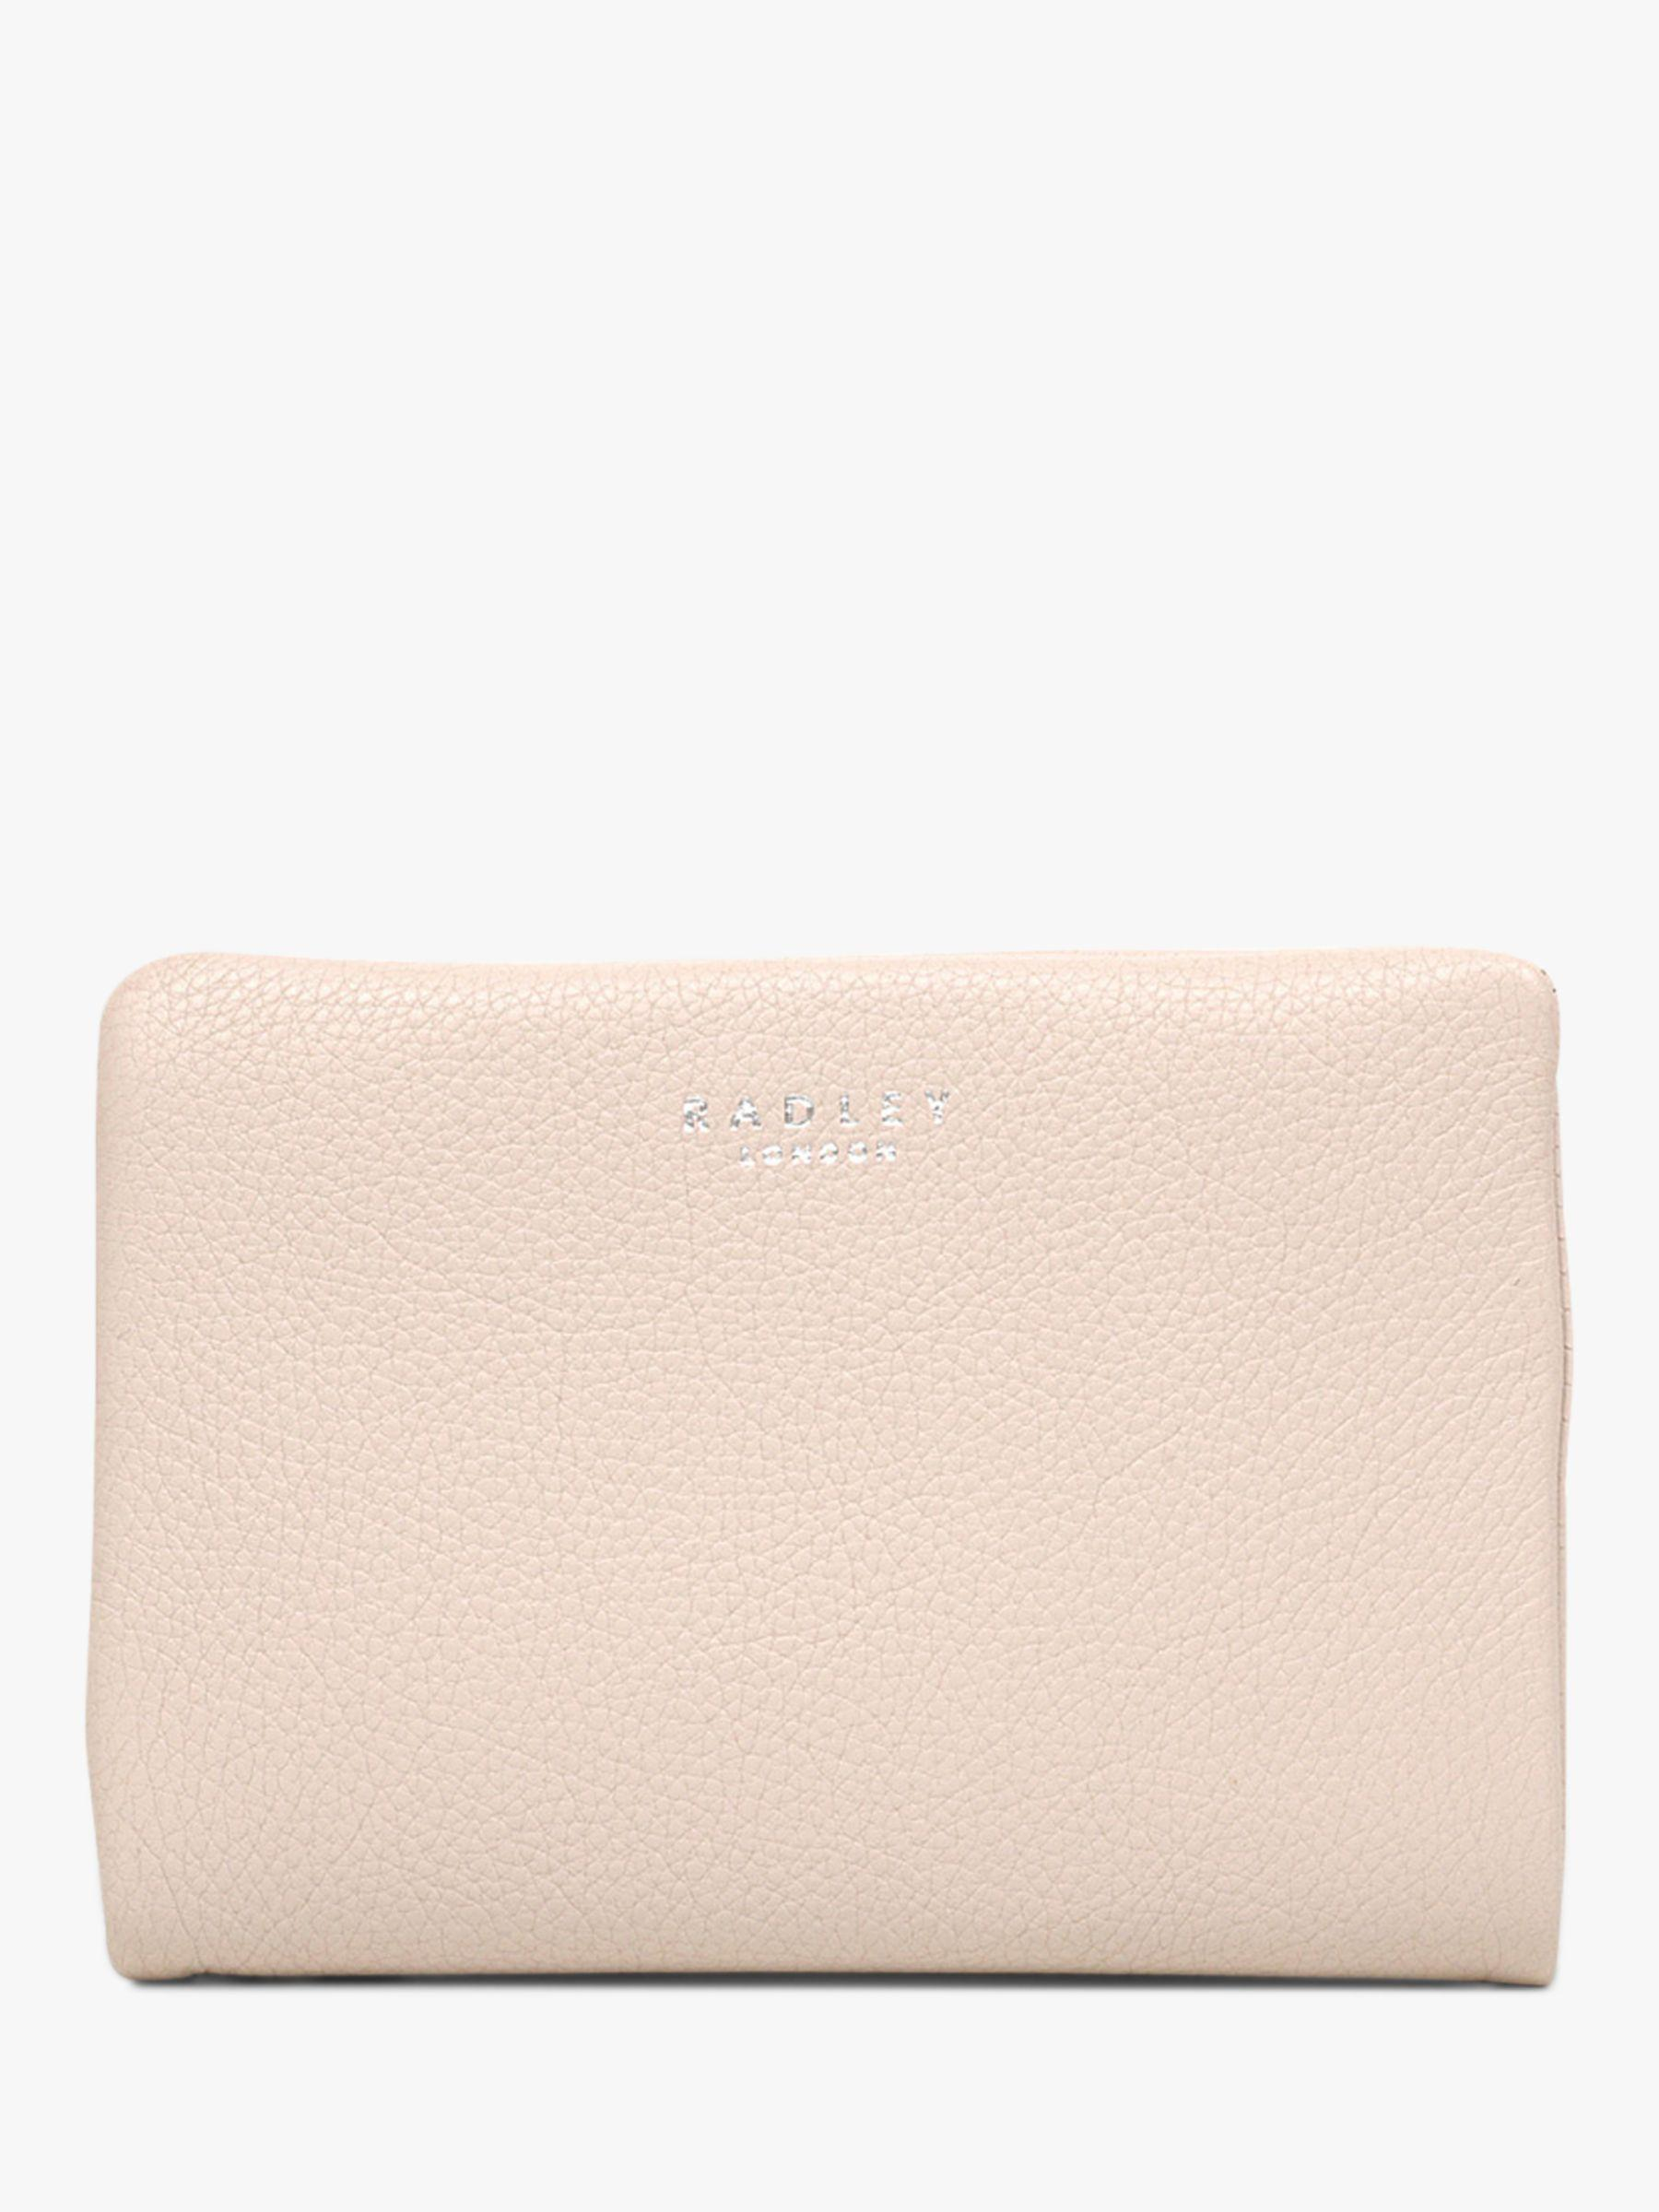 955d714258 ... Larks Wood Leather Medium Folded Purse - Lyst. Visit John Lewis and  Partners. Tap to visit site